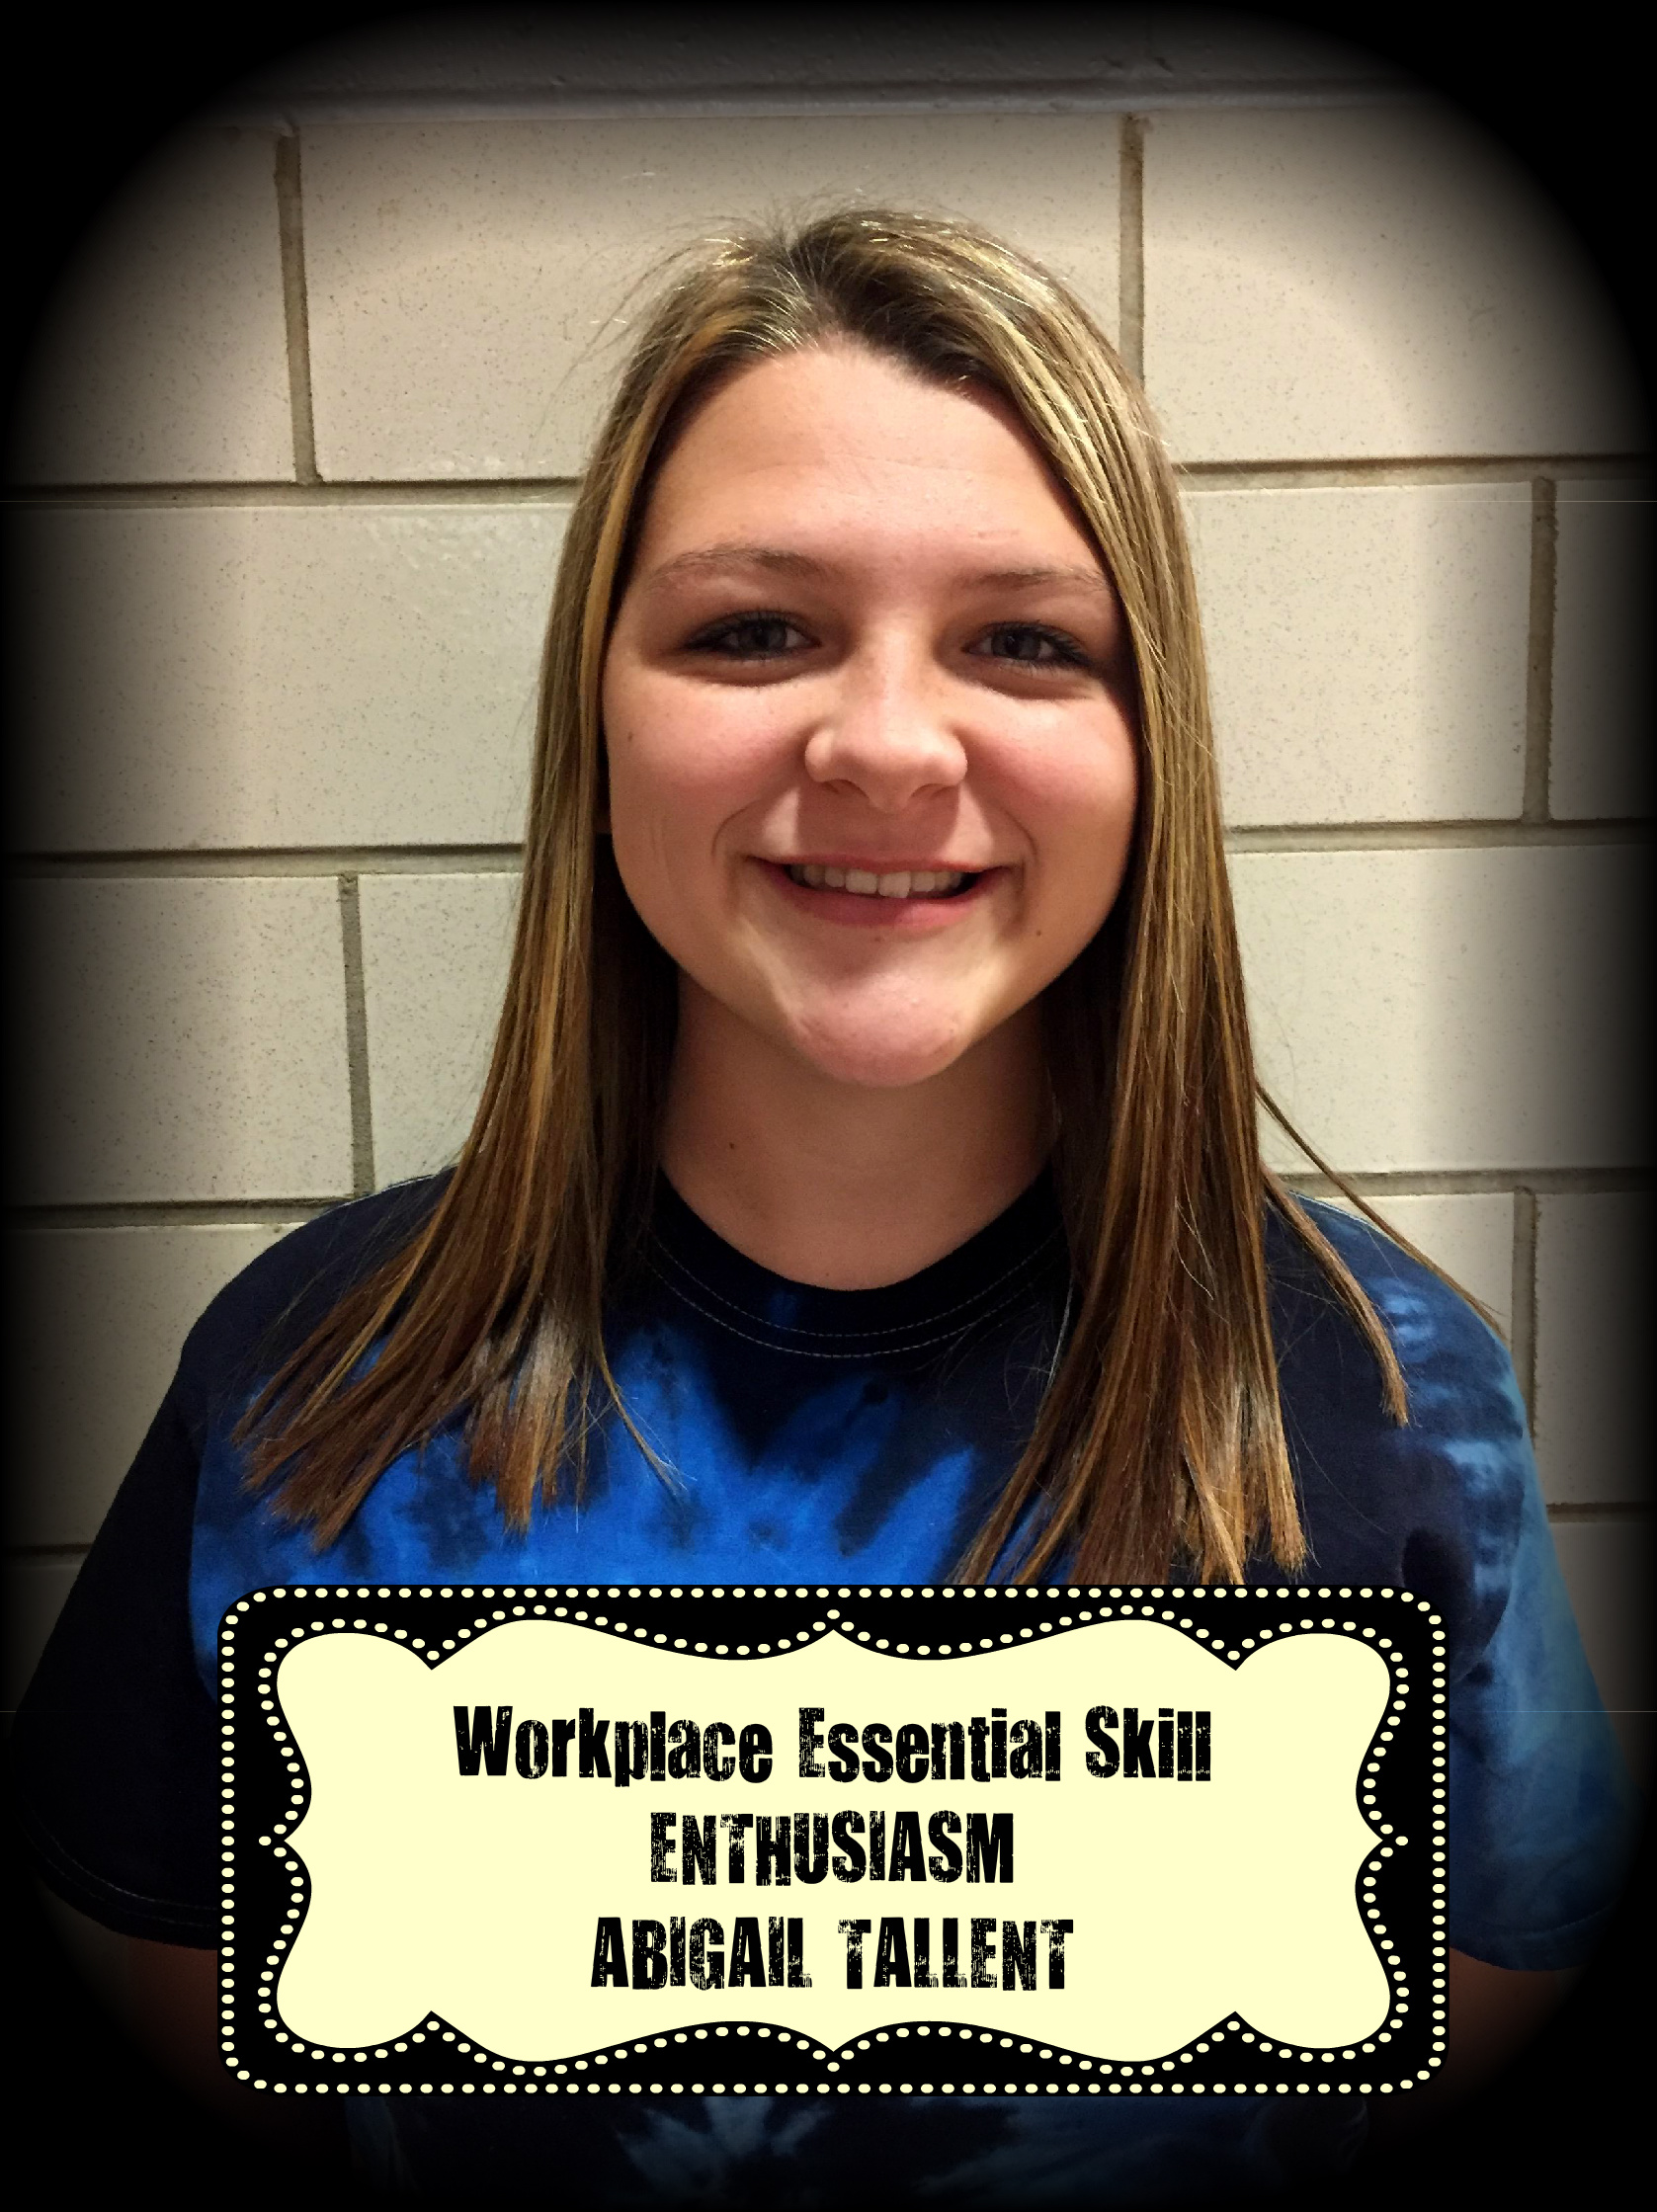 Abigail Tallent was awarded the Workplace Essential Skill Award for ENTHUSIASM in Health Sciences.